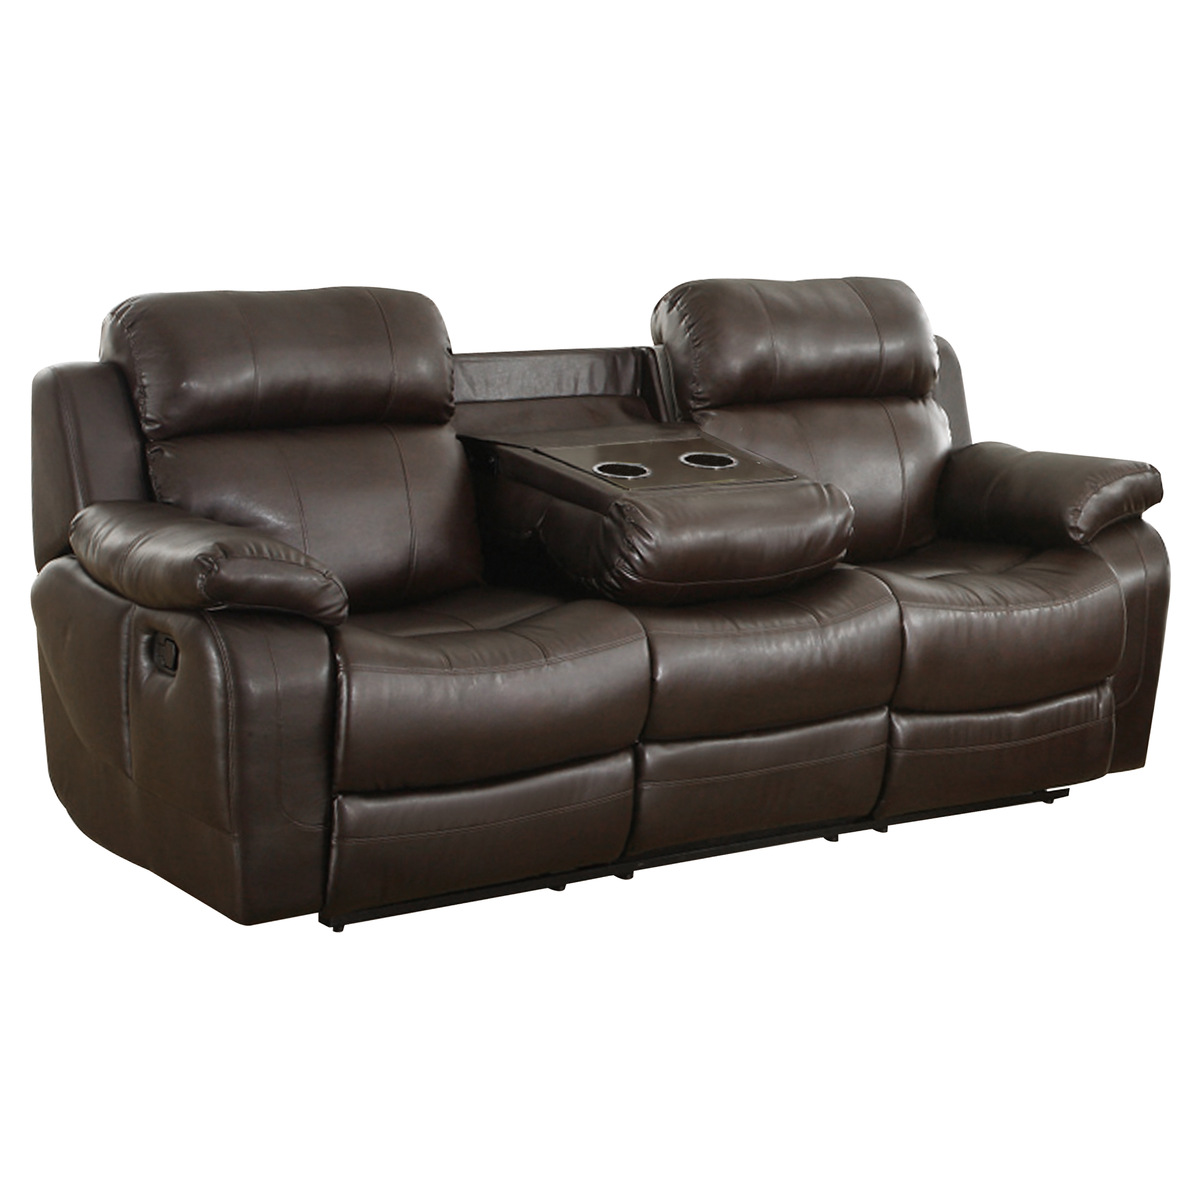 9724BRW-3 Double Reclining Sofa with Center Drop-Down Cup ...